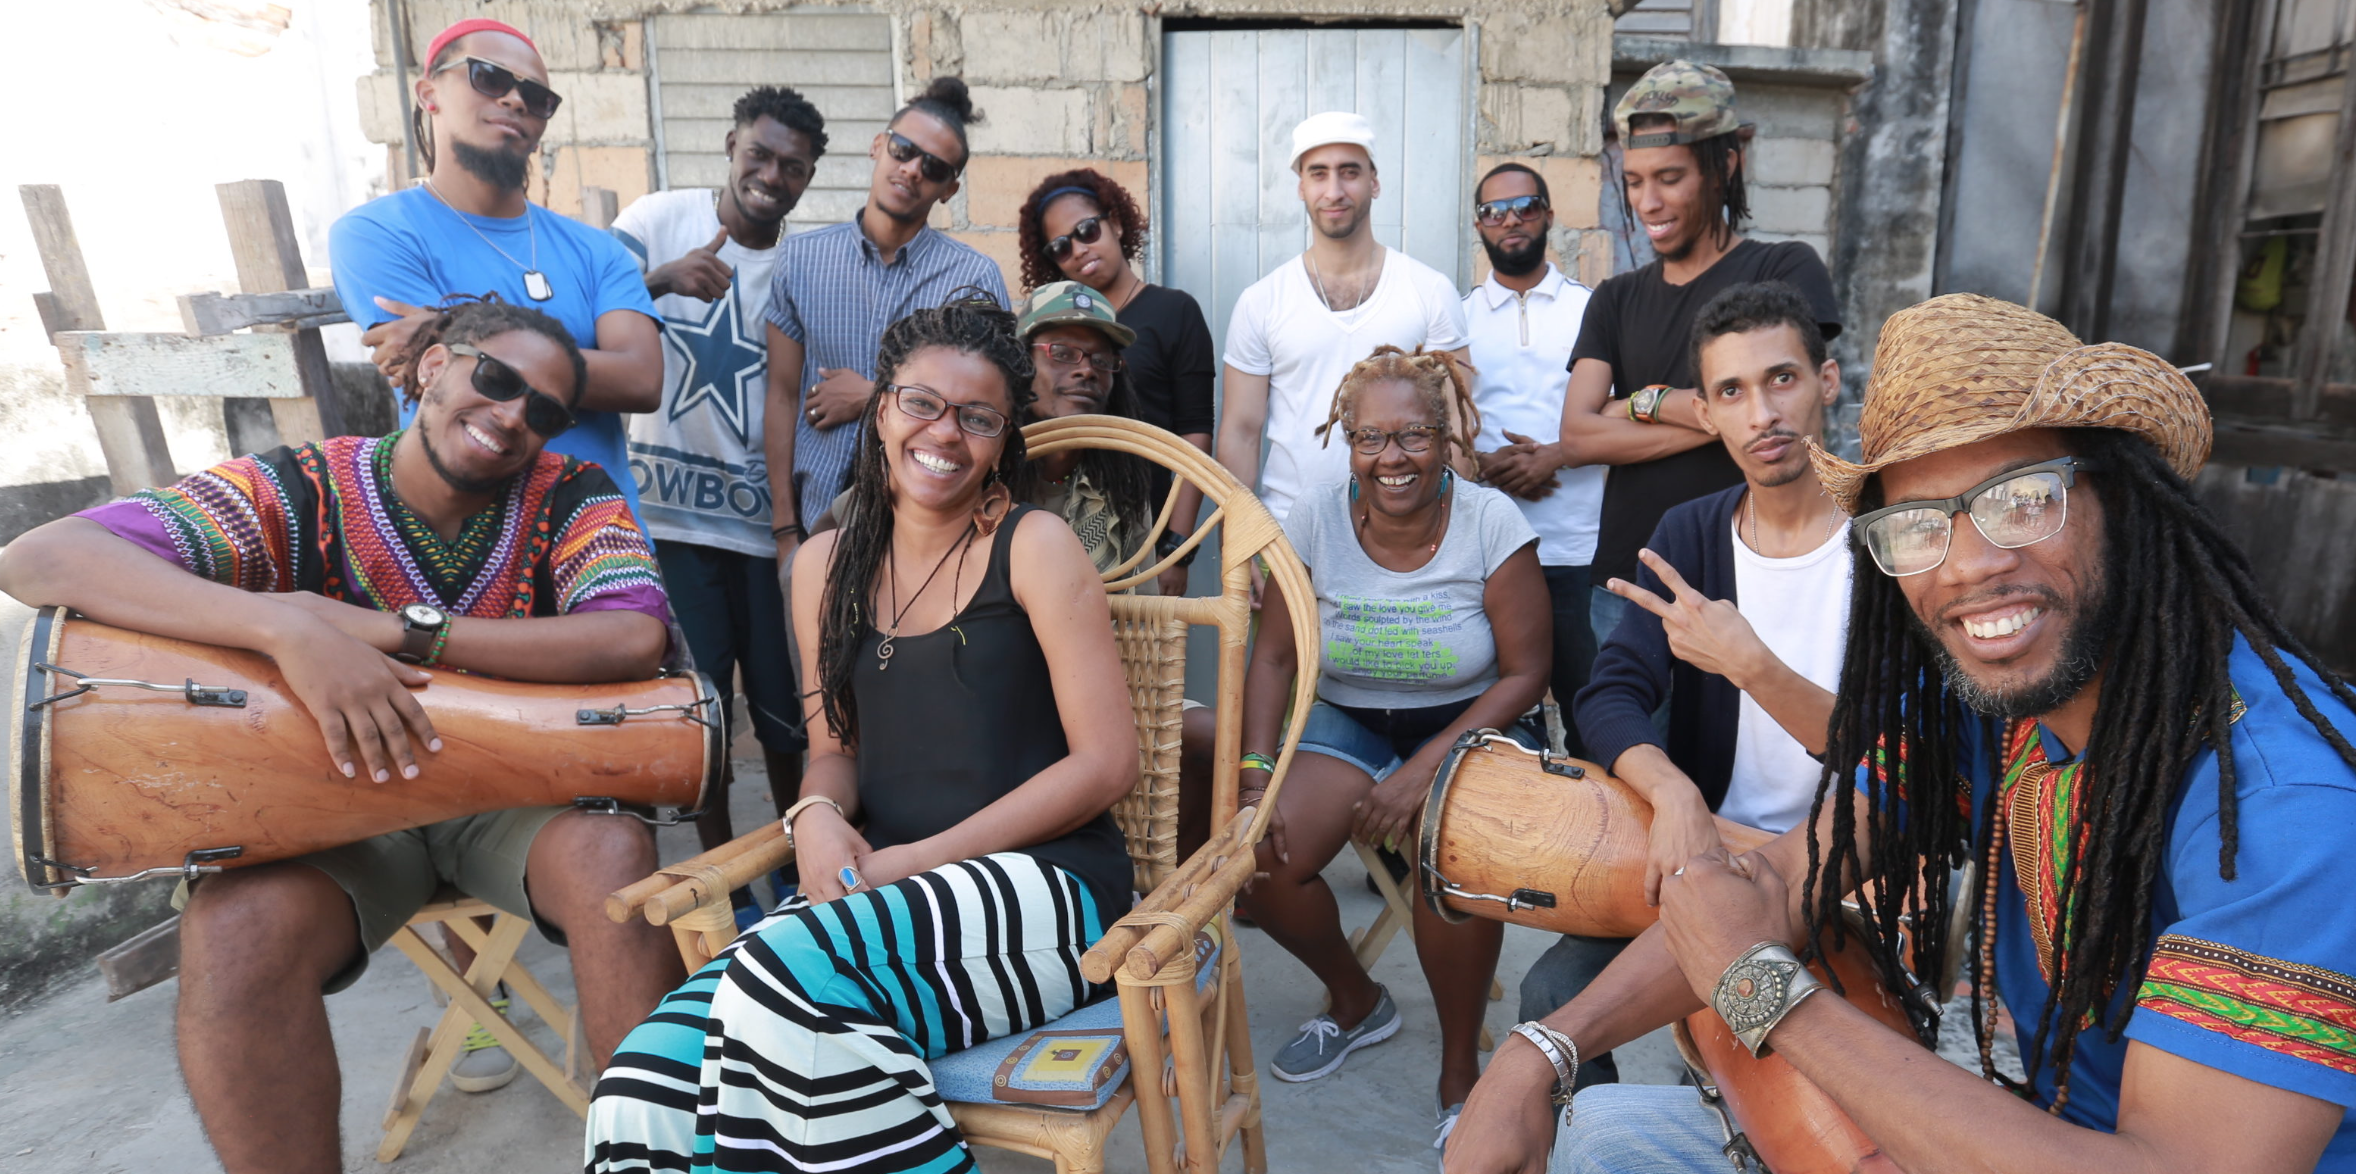 'AfroRazones' Dips Into The Living, Breathing Oasis Of Afro-Cuban Identity Through Hip-Hop